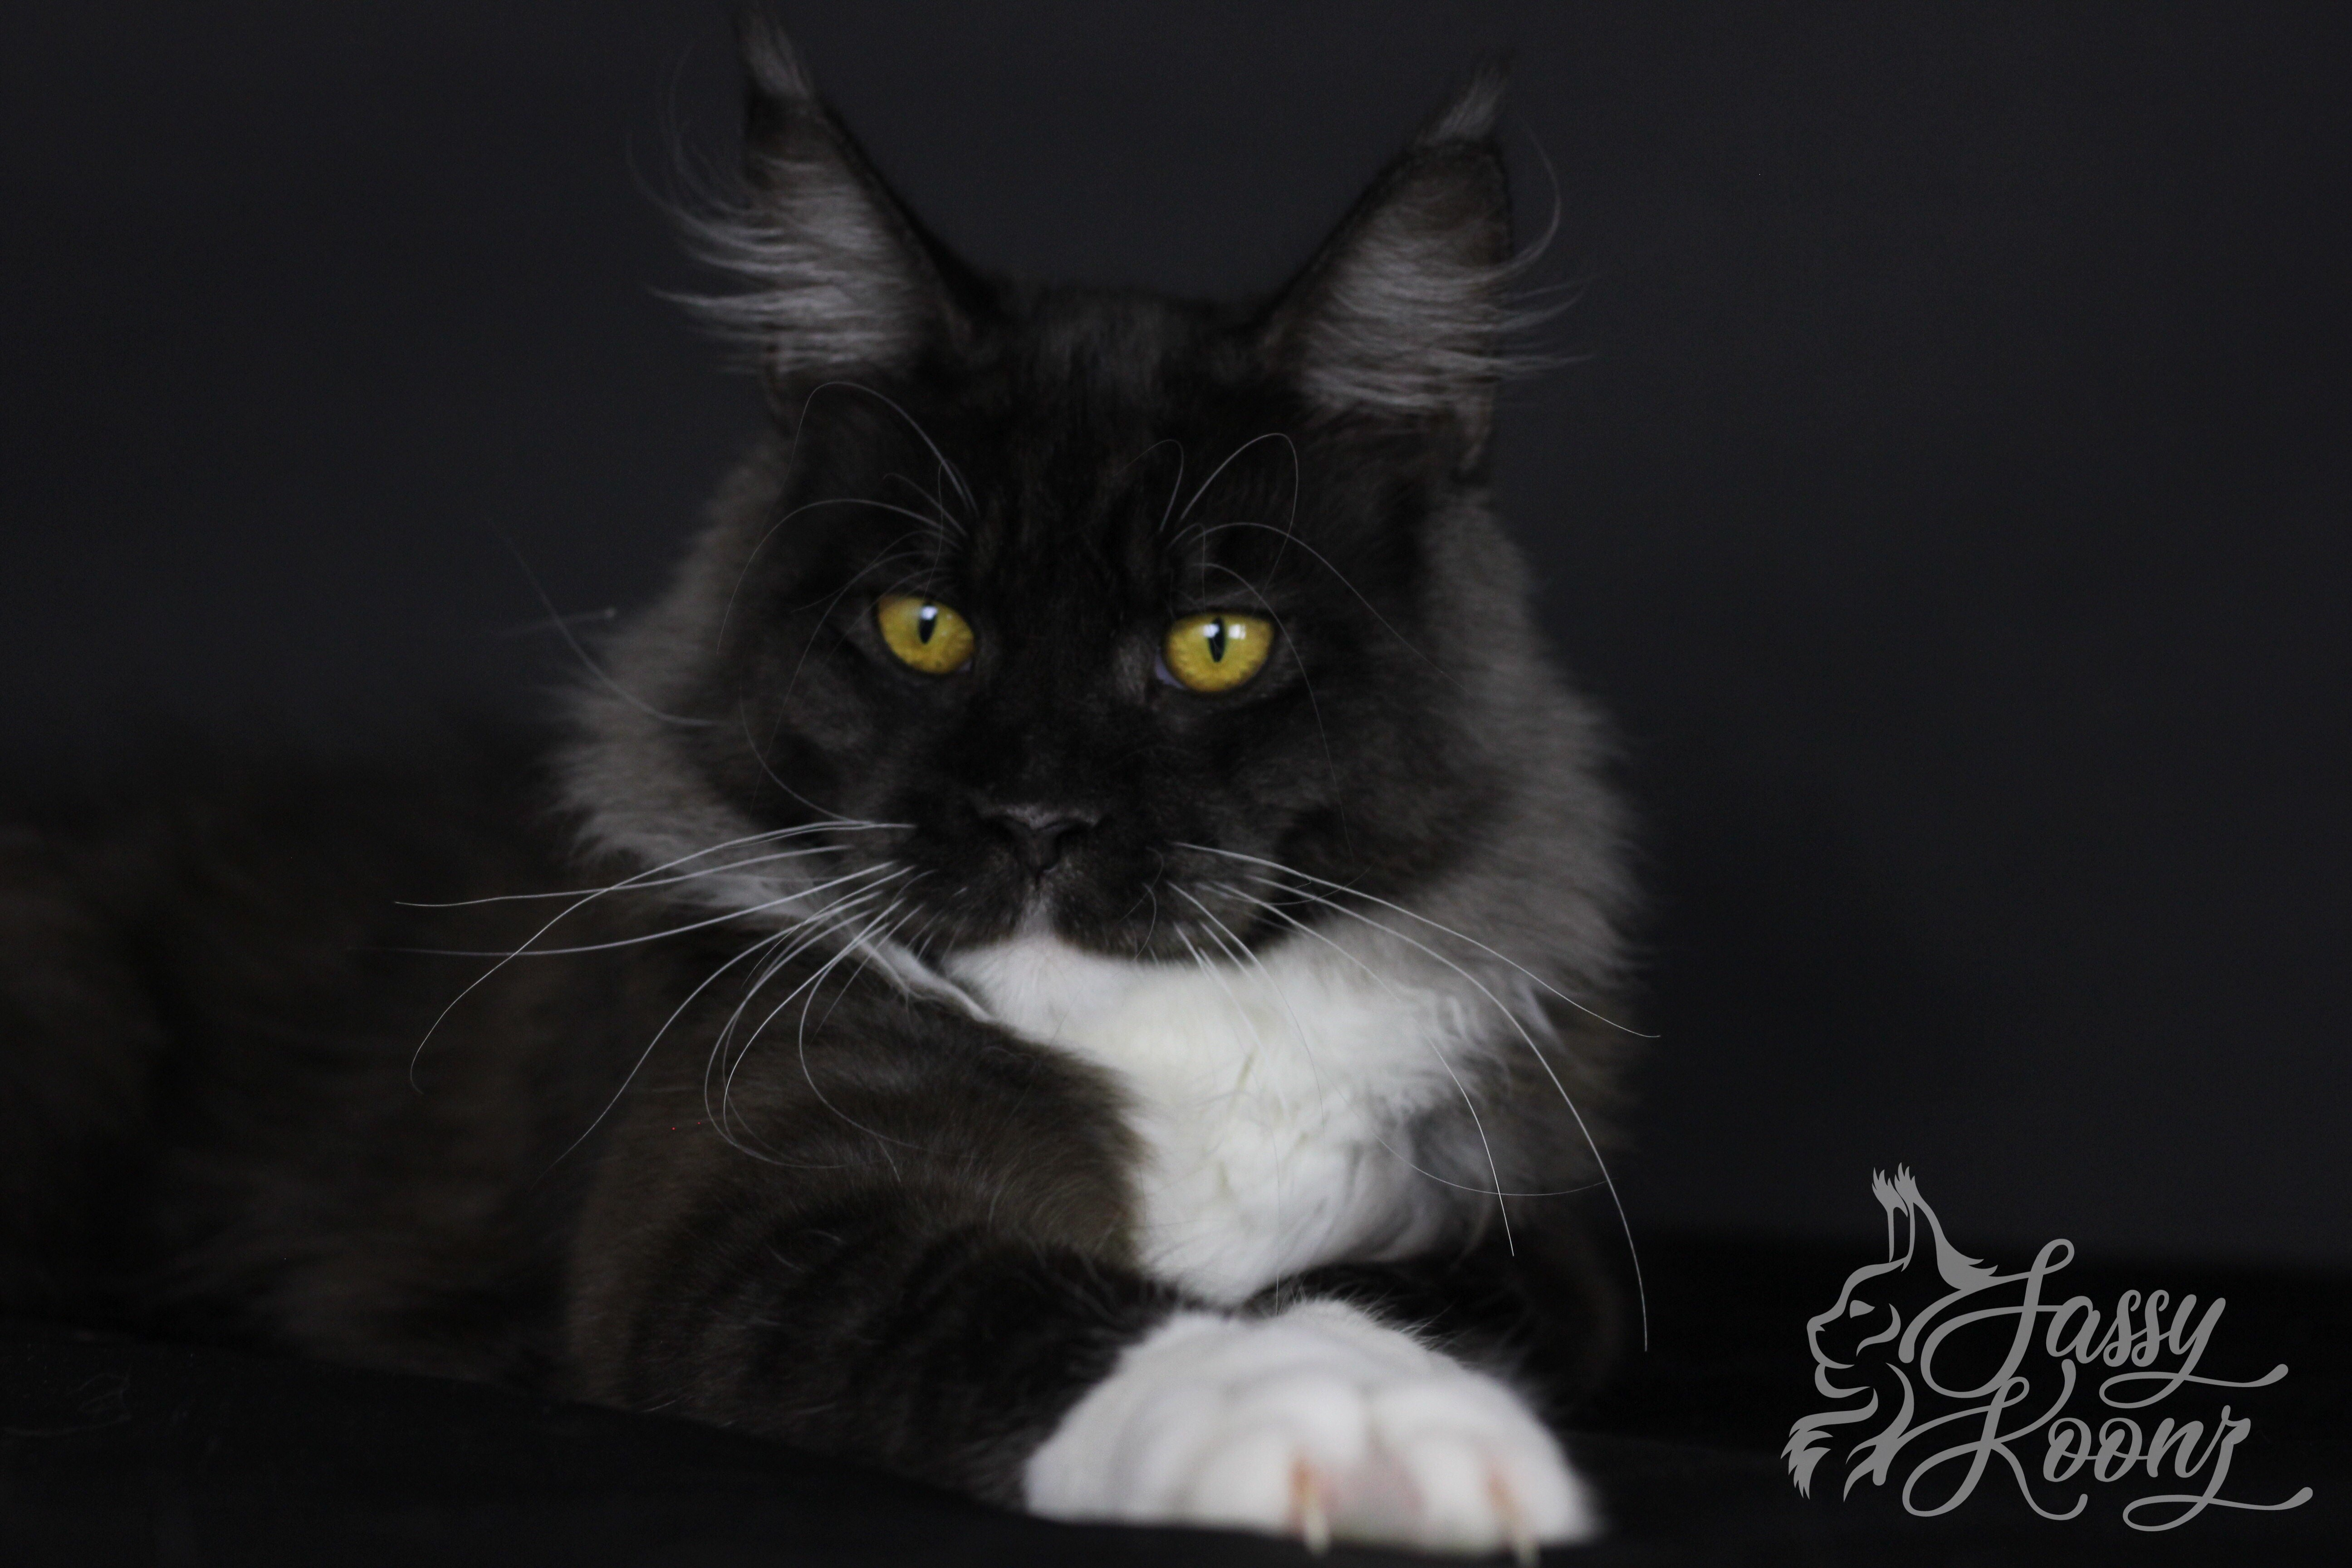 Sassy Koonz Specializes in European Maine Coons